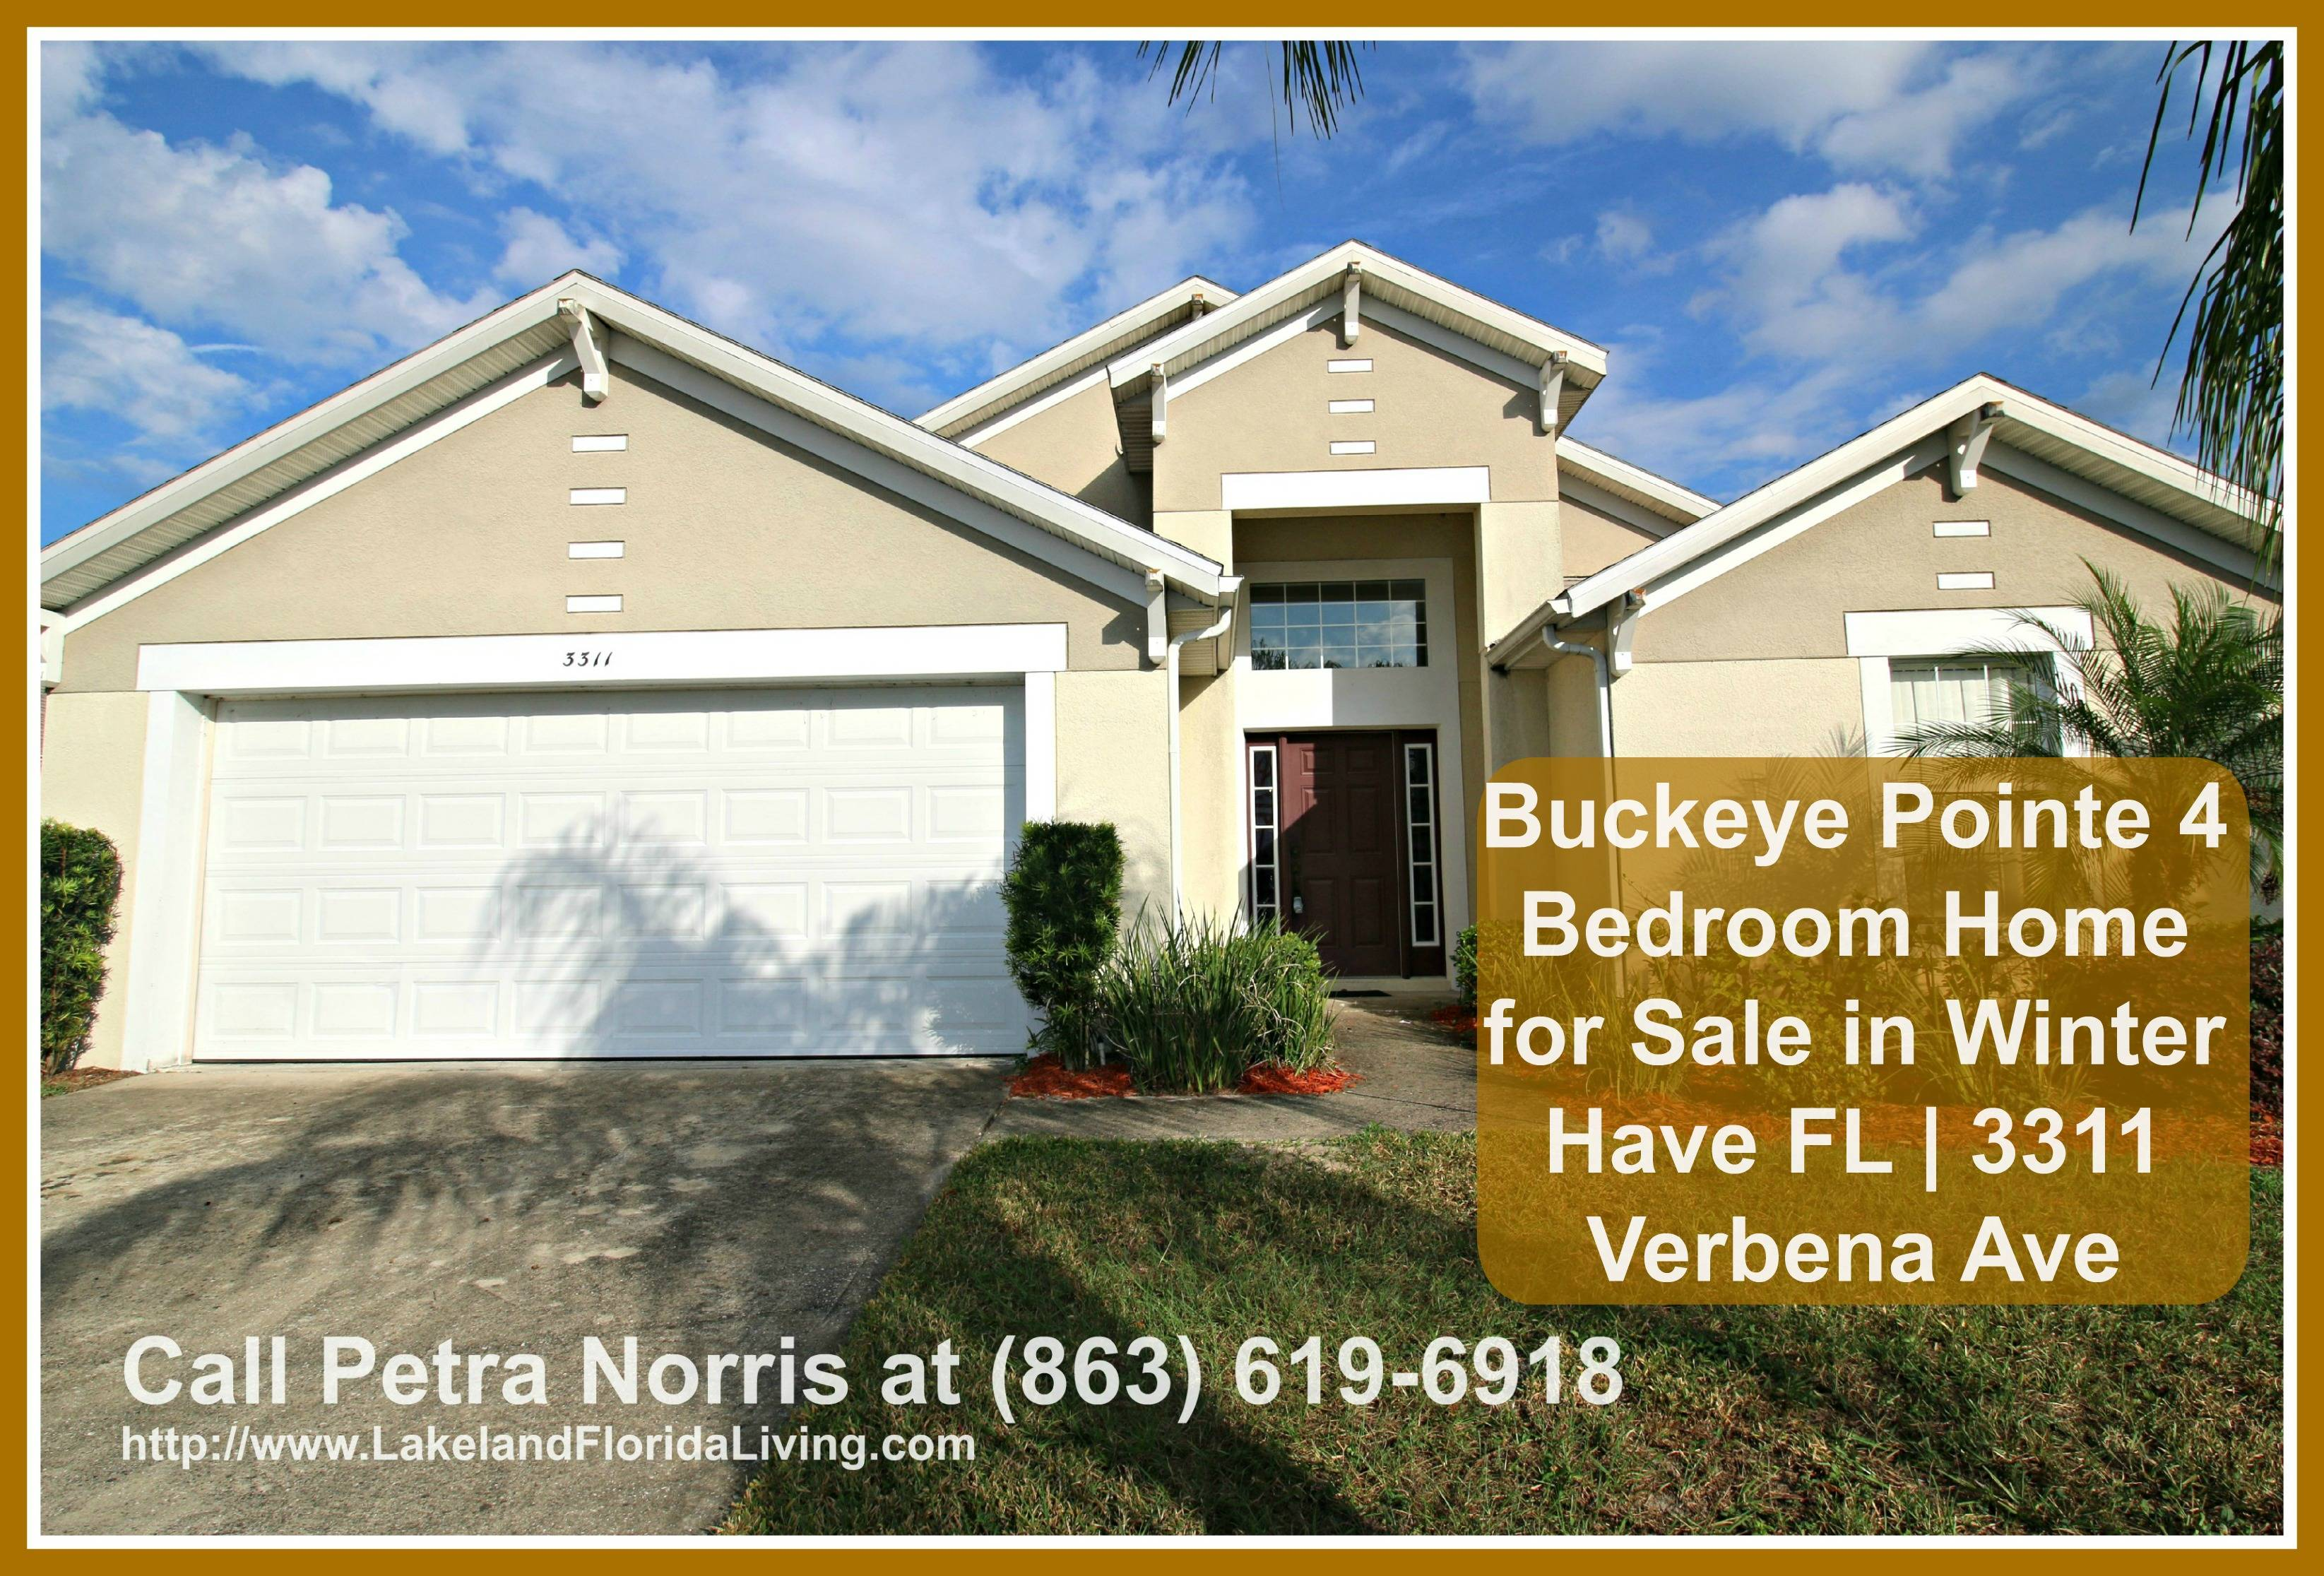 Built with 4 spacious bedrooms, 3 full baths, a kitchen with new appliances, and more, this fabulous home for sale in Winter Haven FL could be the dream home you are looking for.